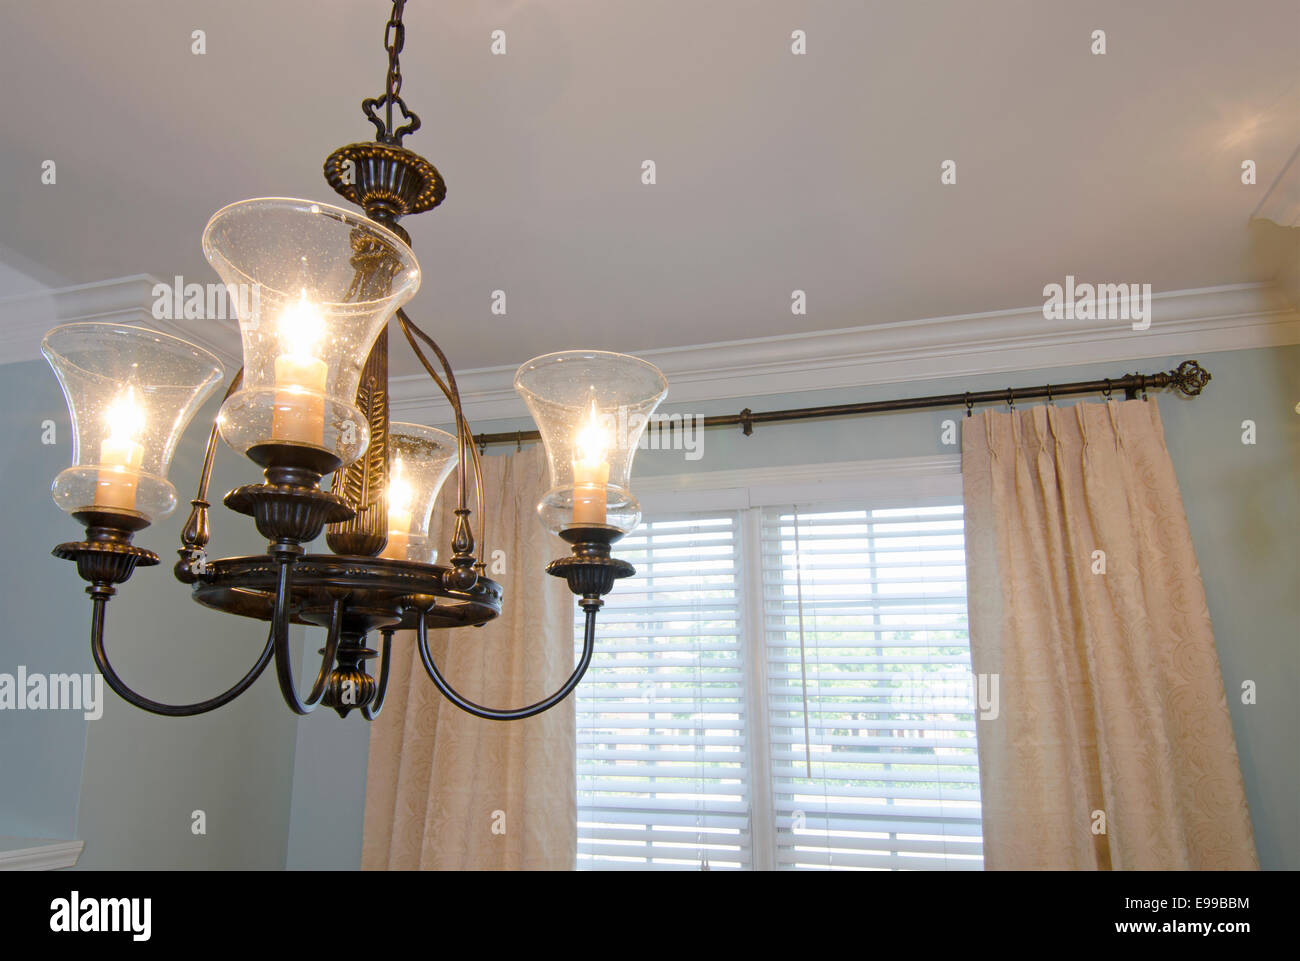 Light Fixture: A traditional style light fixture with hand-blown globes hanging in a dining room. - Stock Image